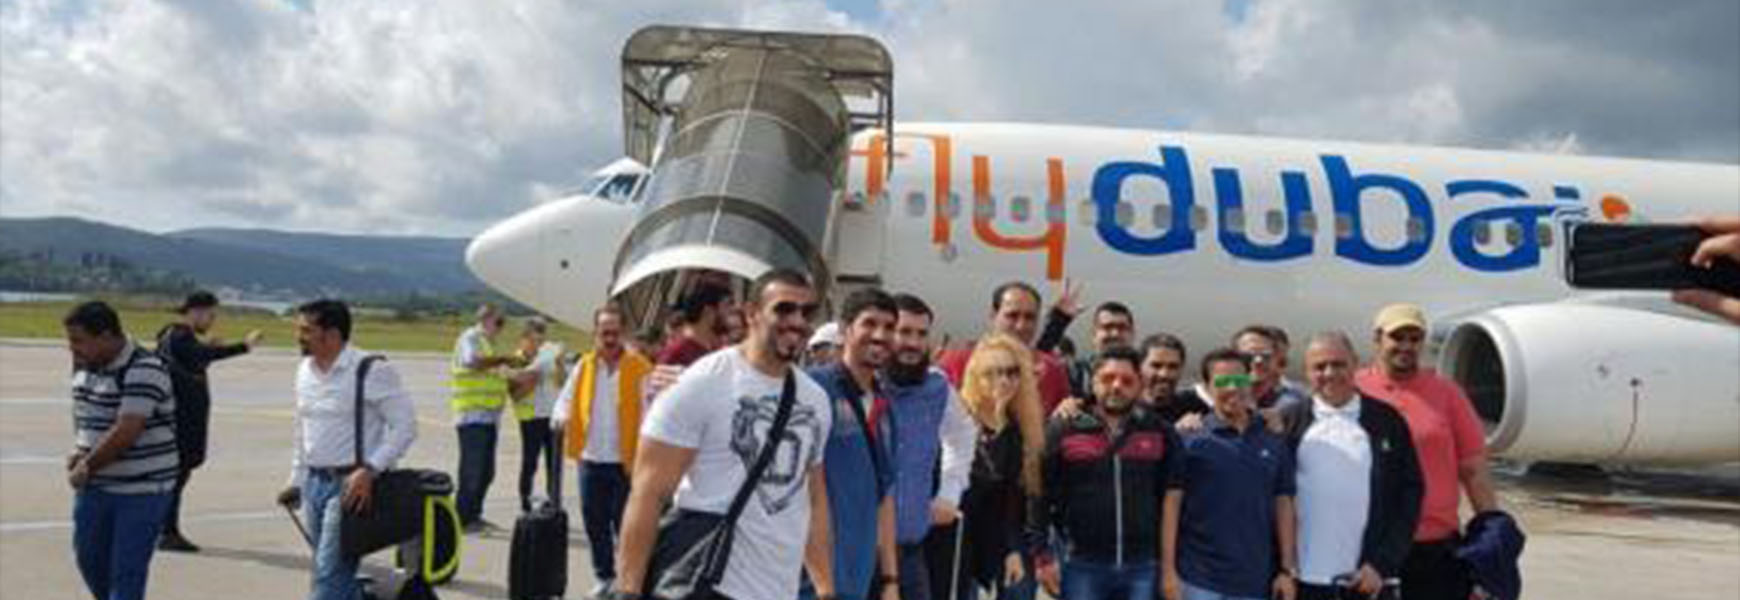 The first flight from Dubai arrived in Tivat